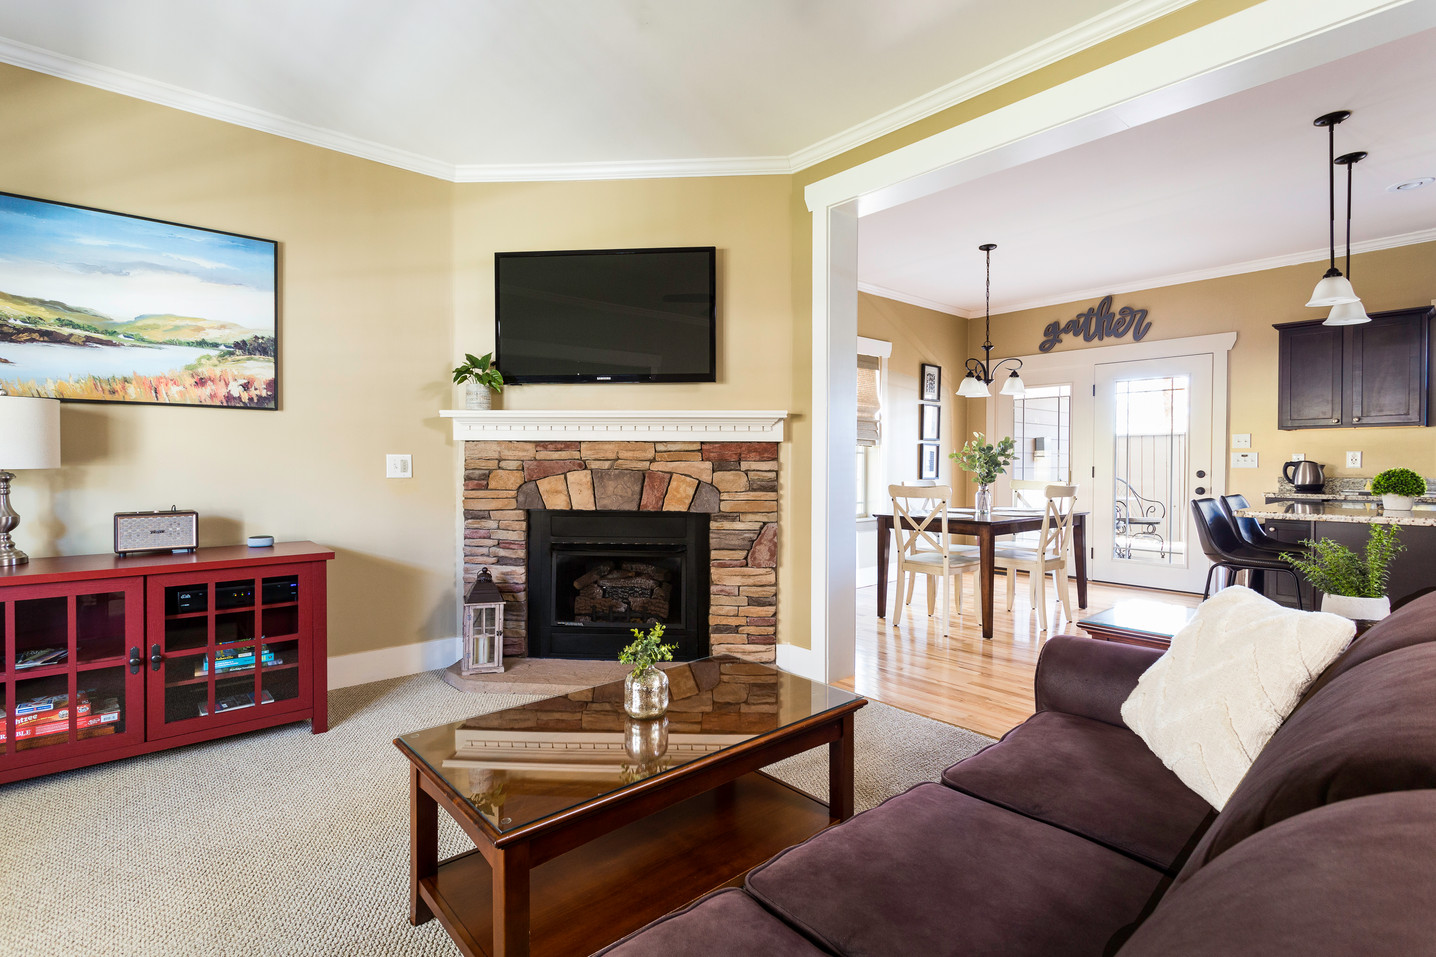 Living room with a large firespace